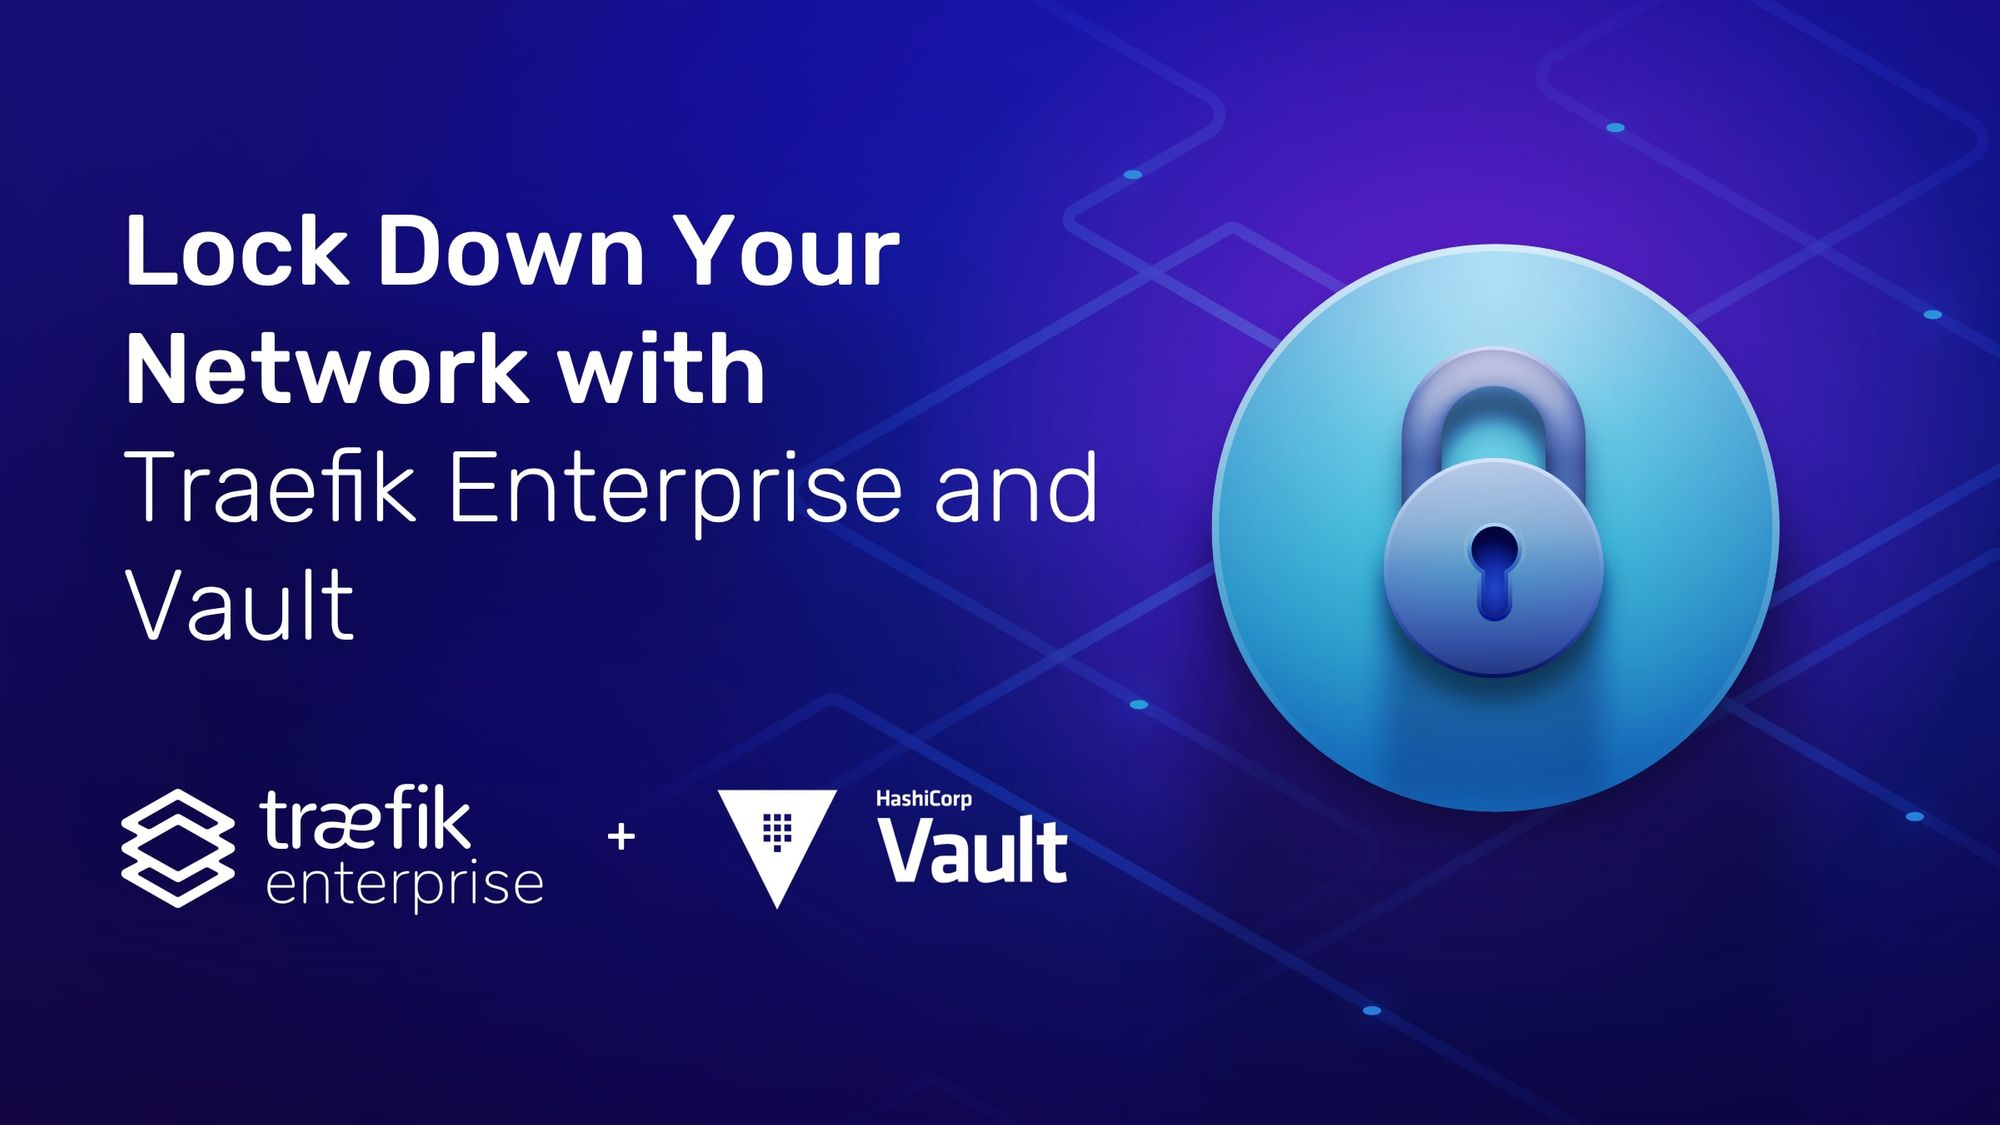 Lock Down Your Network with Traefik Enterprise and Vault